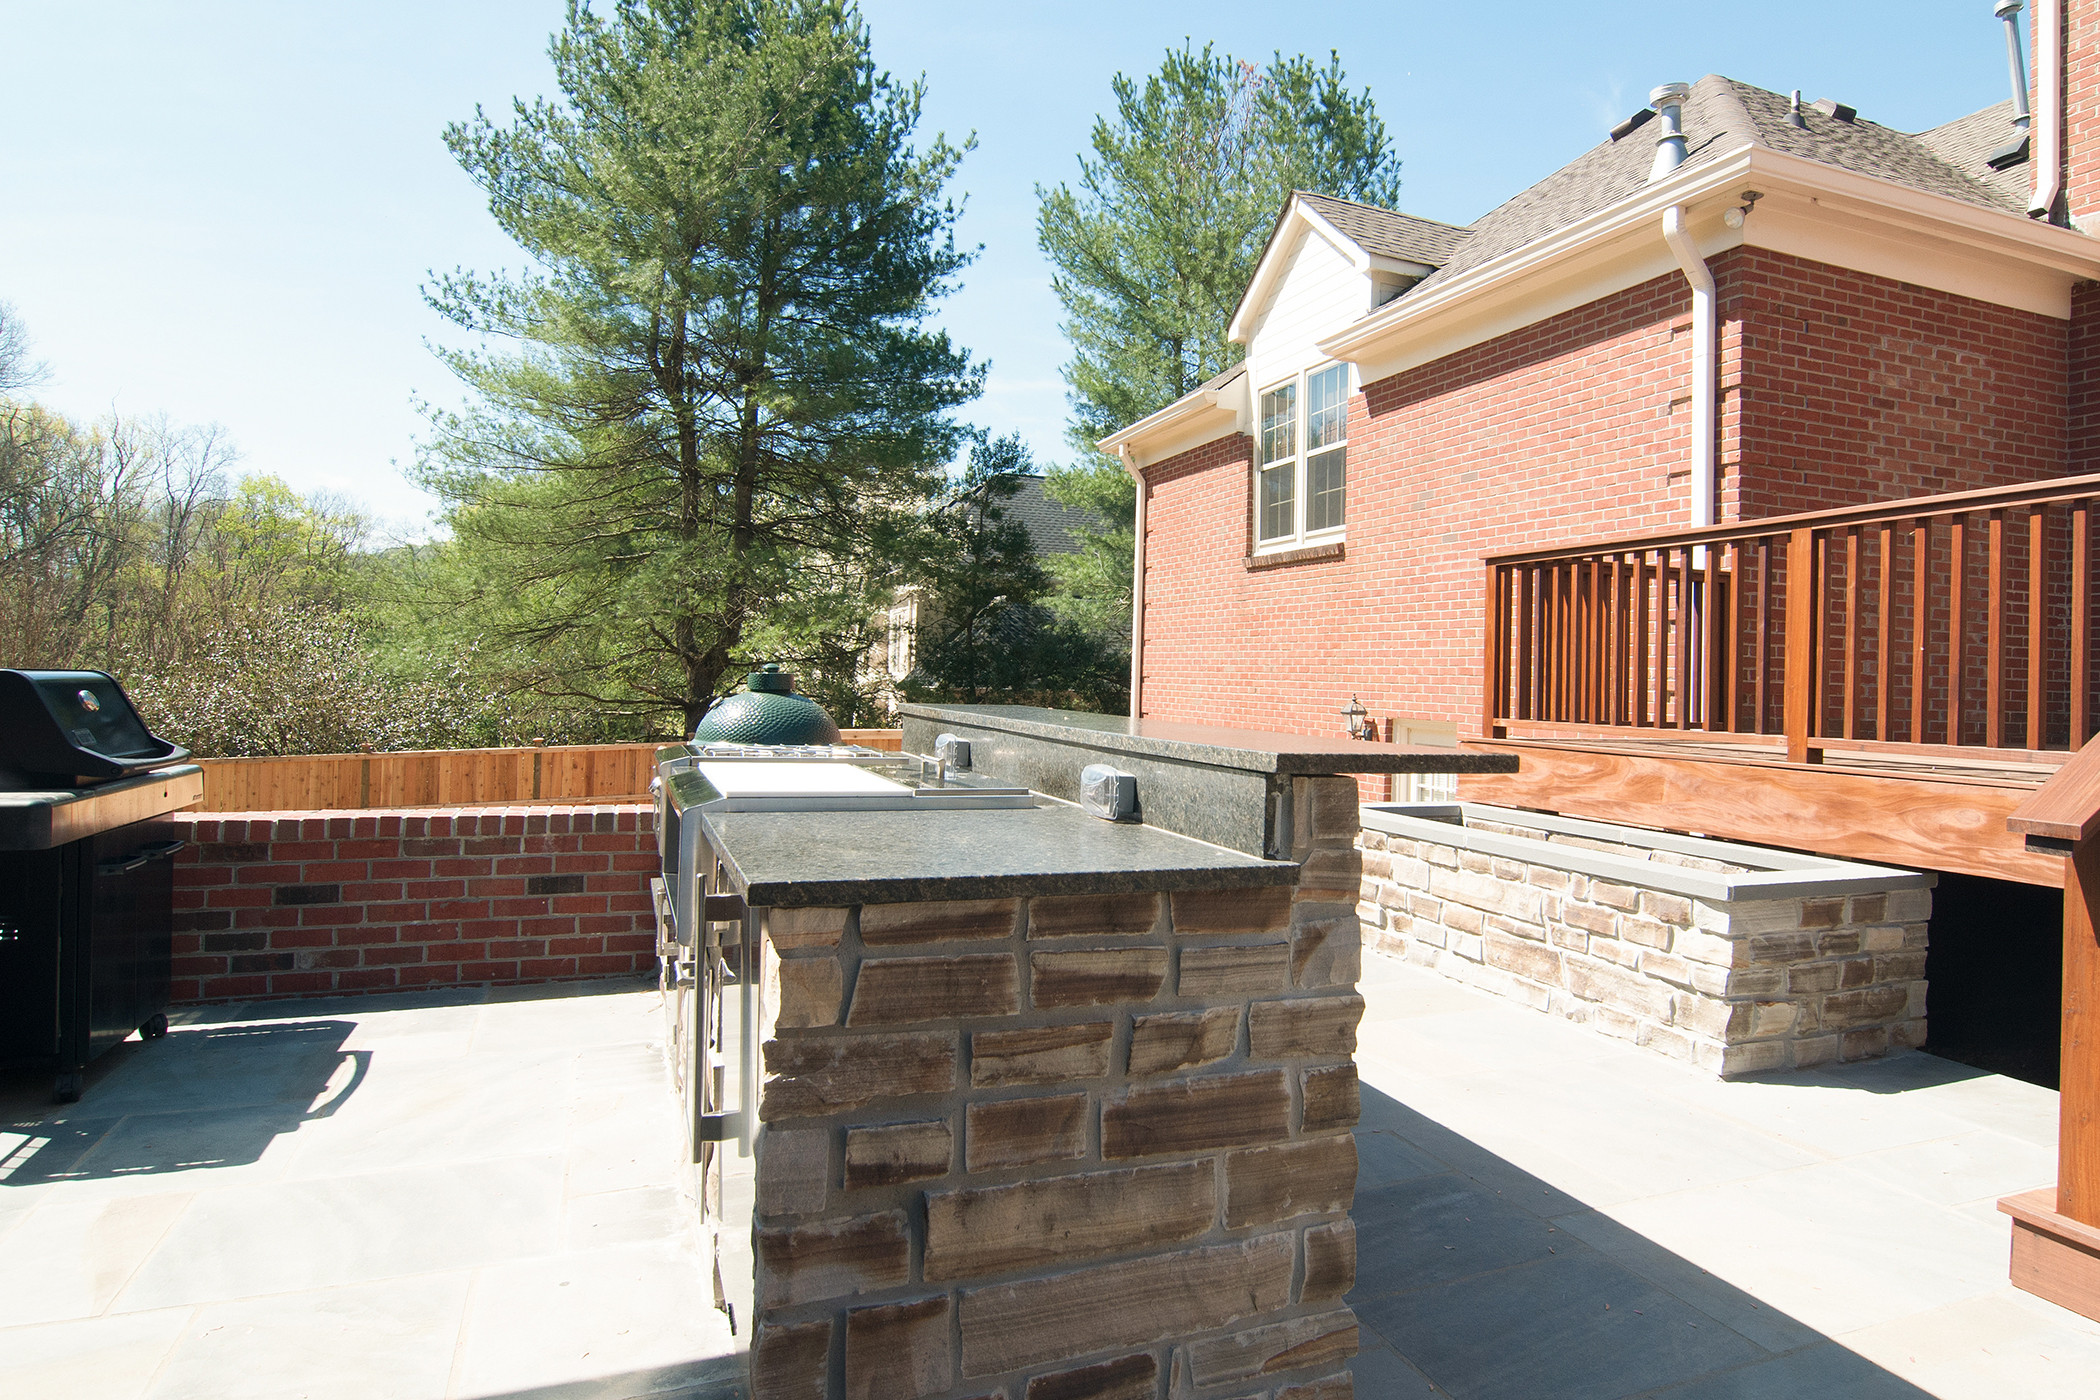 Brentwood Outdoor Patio/Kitchen